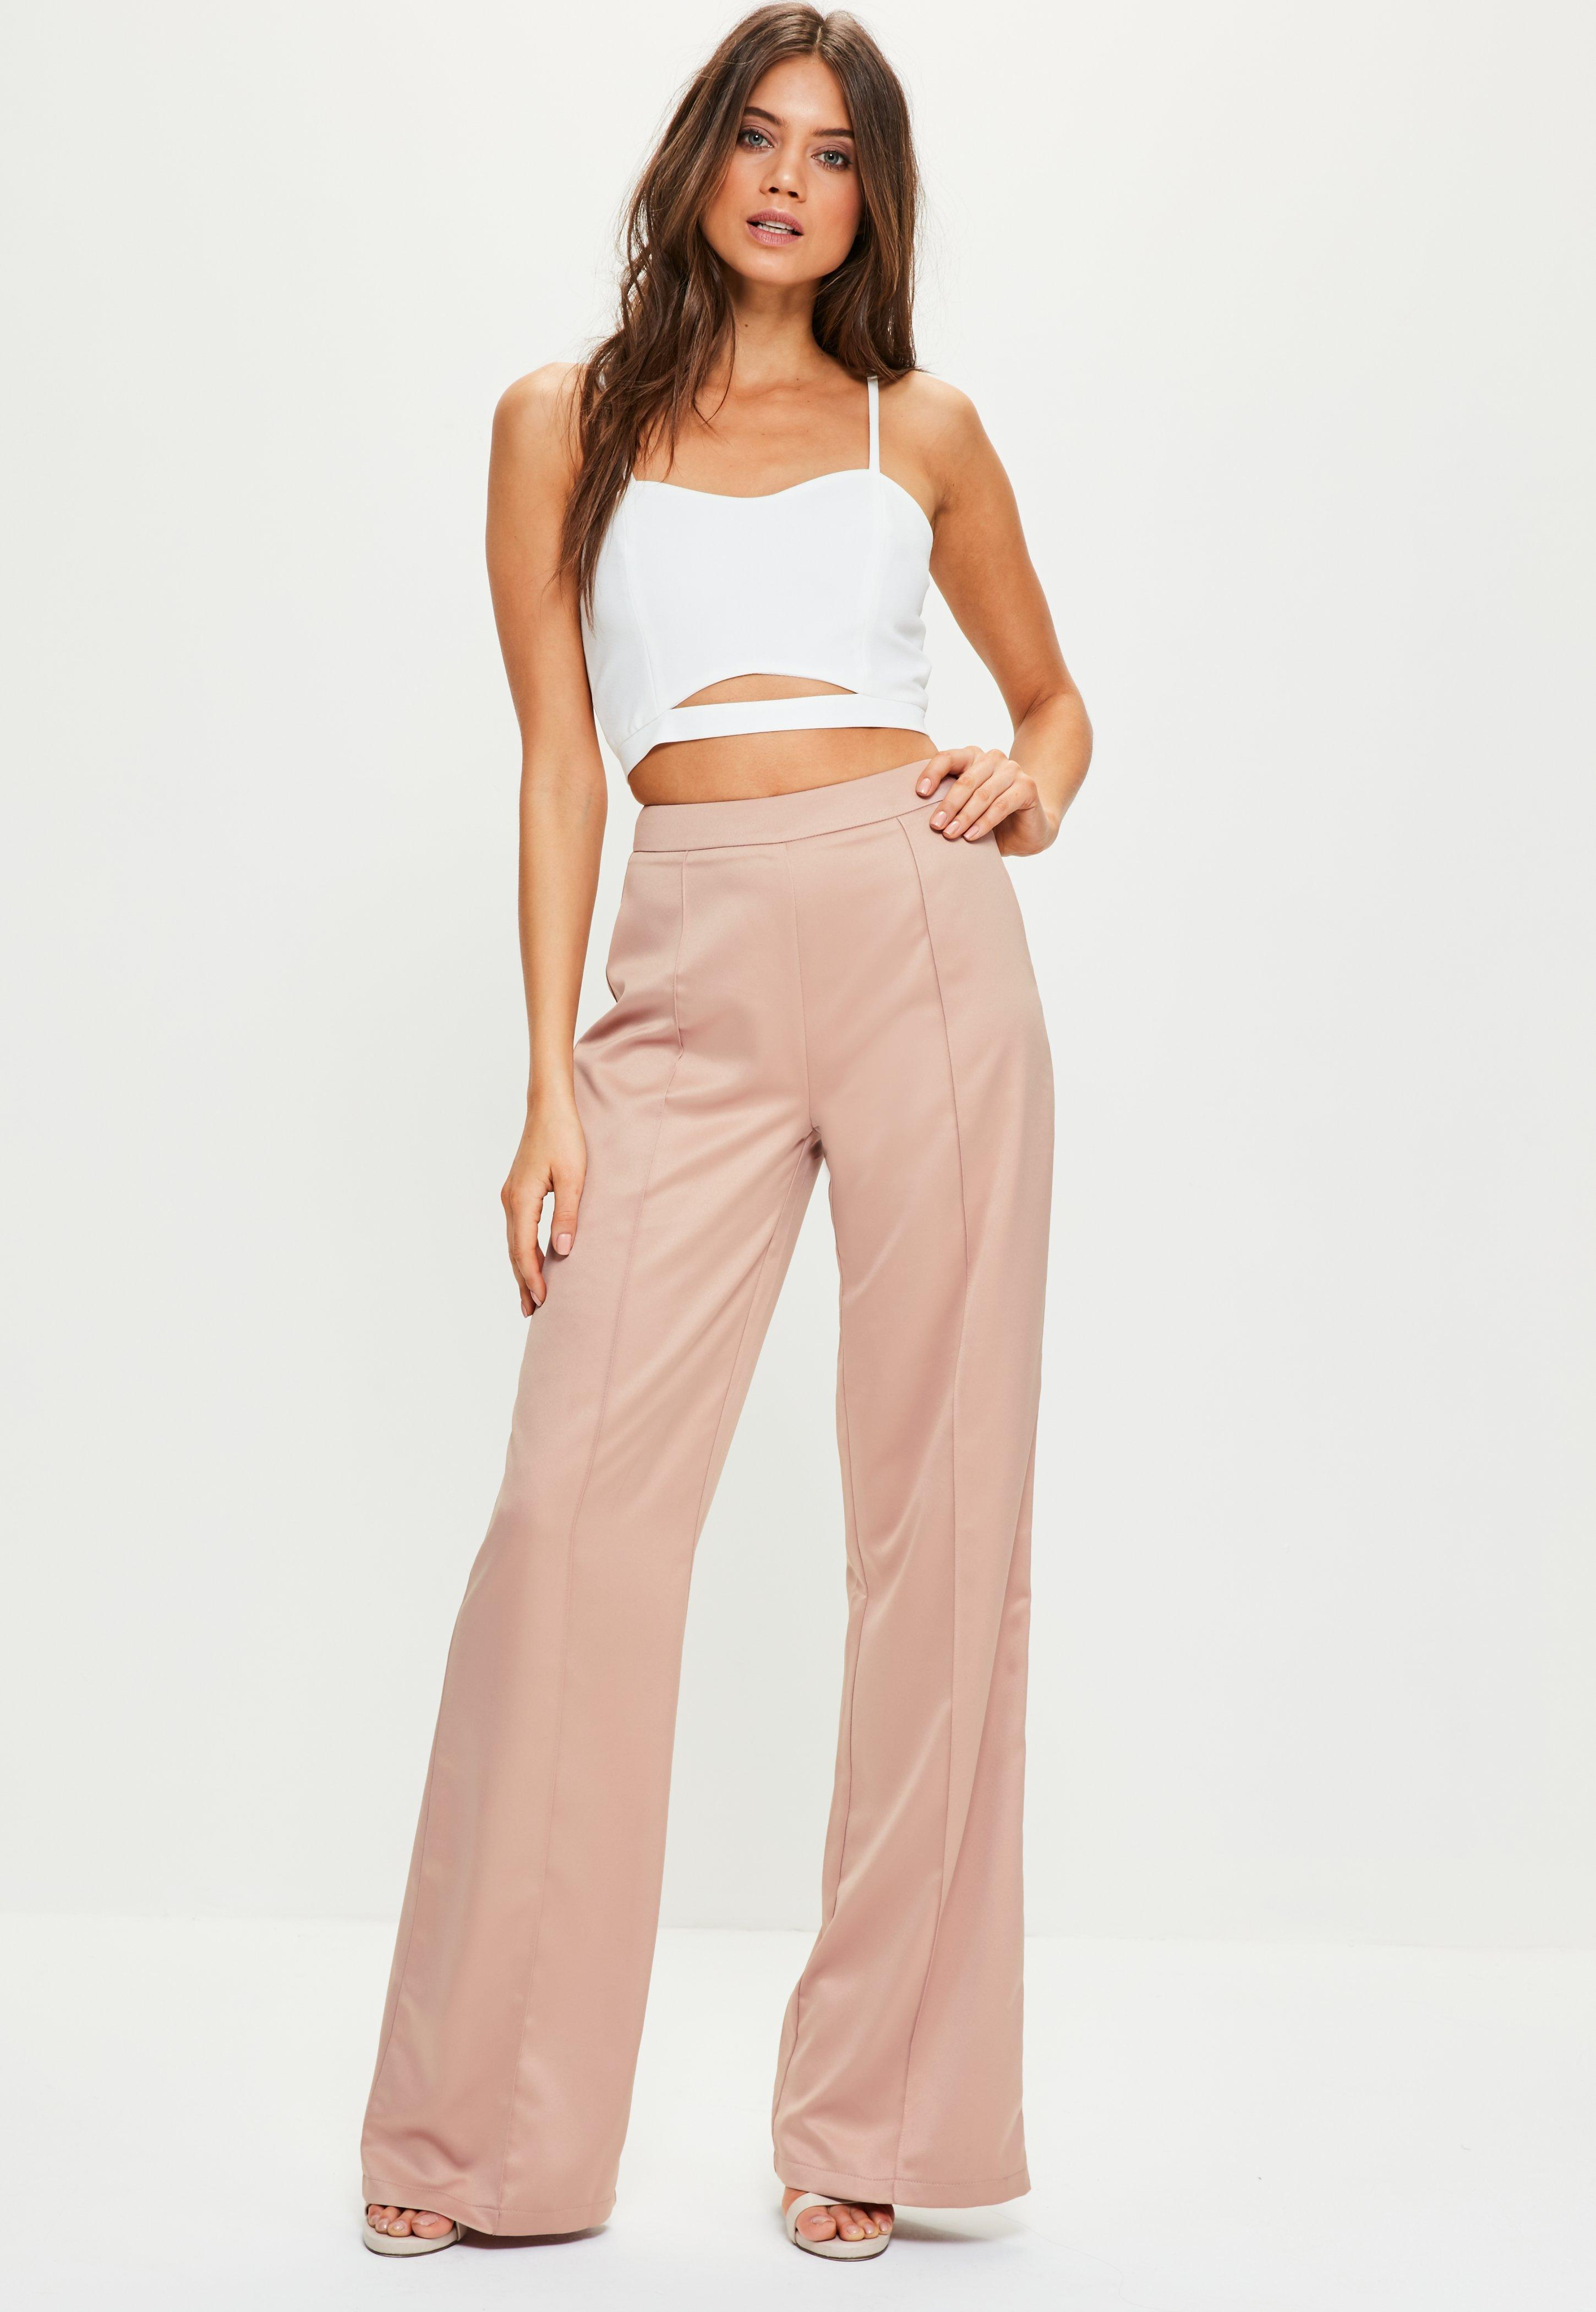 Buy Cheap From China Missguided Satin Polka Dot Wide Leg Trouser High Quality Sale Online Discount Pay With Visa hs8RJH